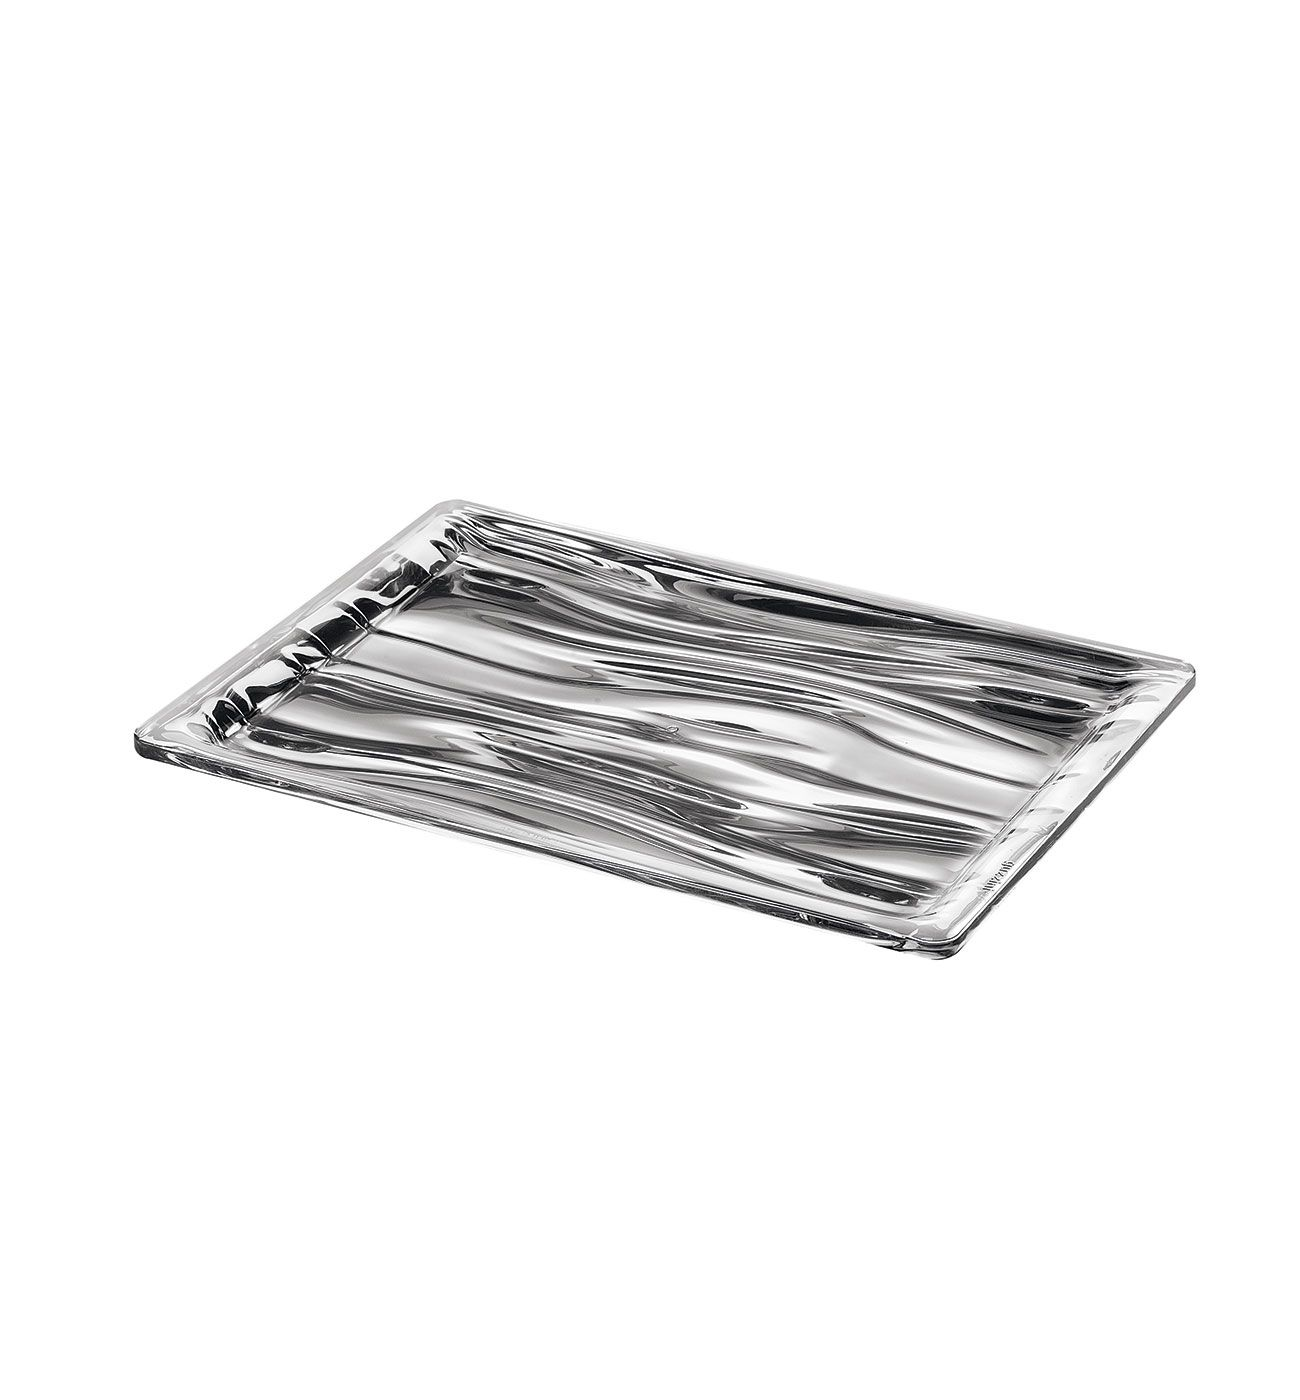 S Rectangular Tray Look (Chrome)